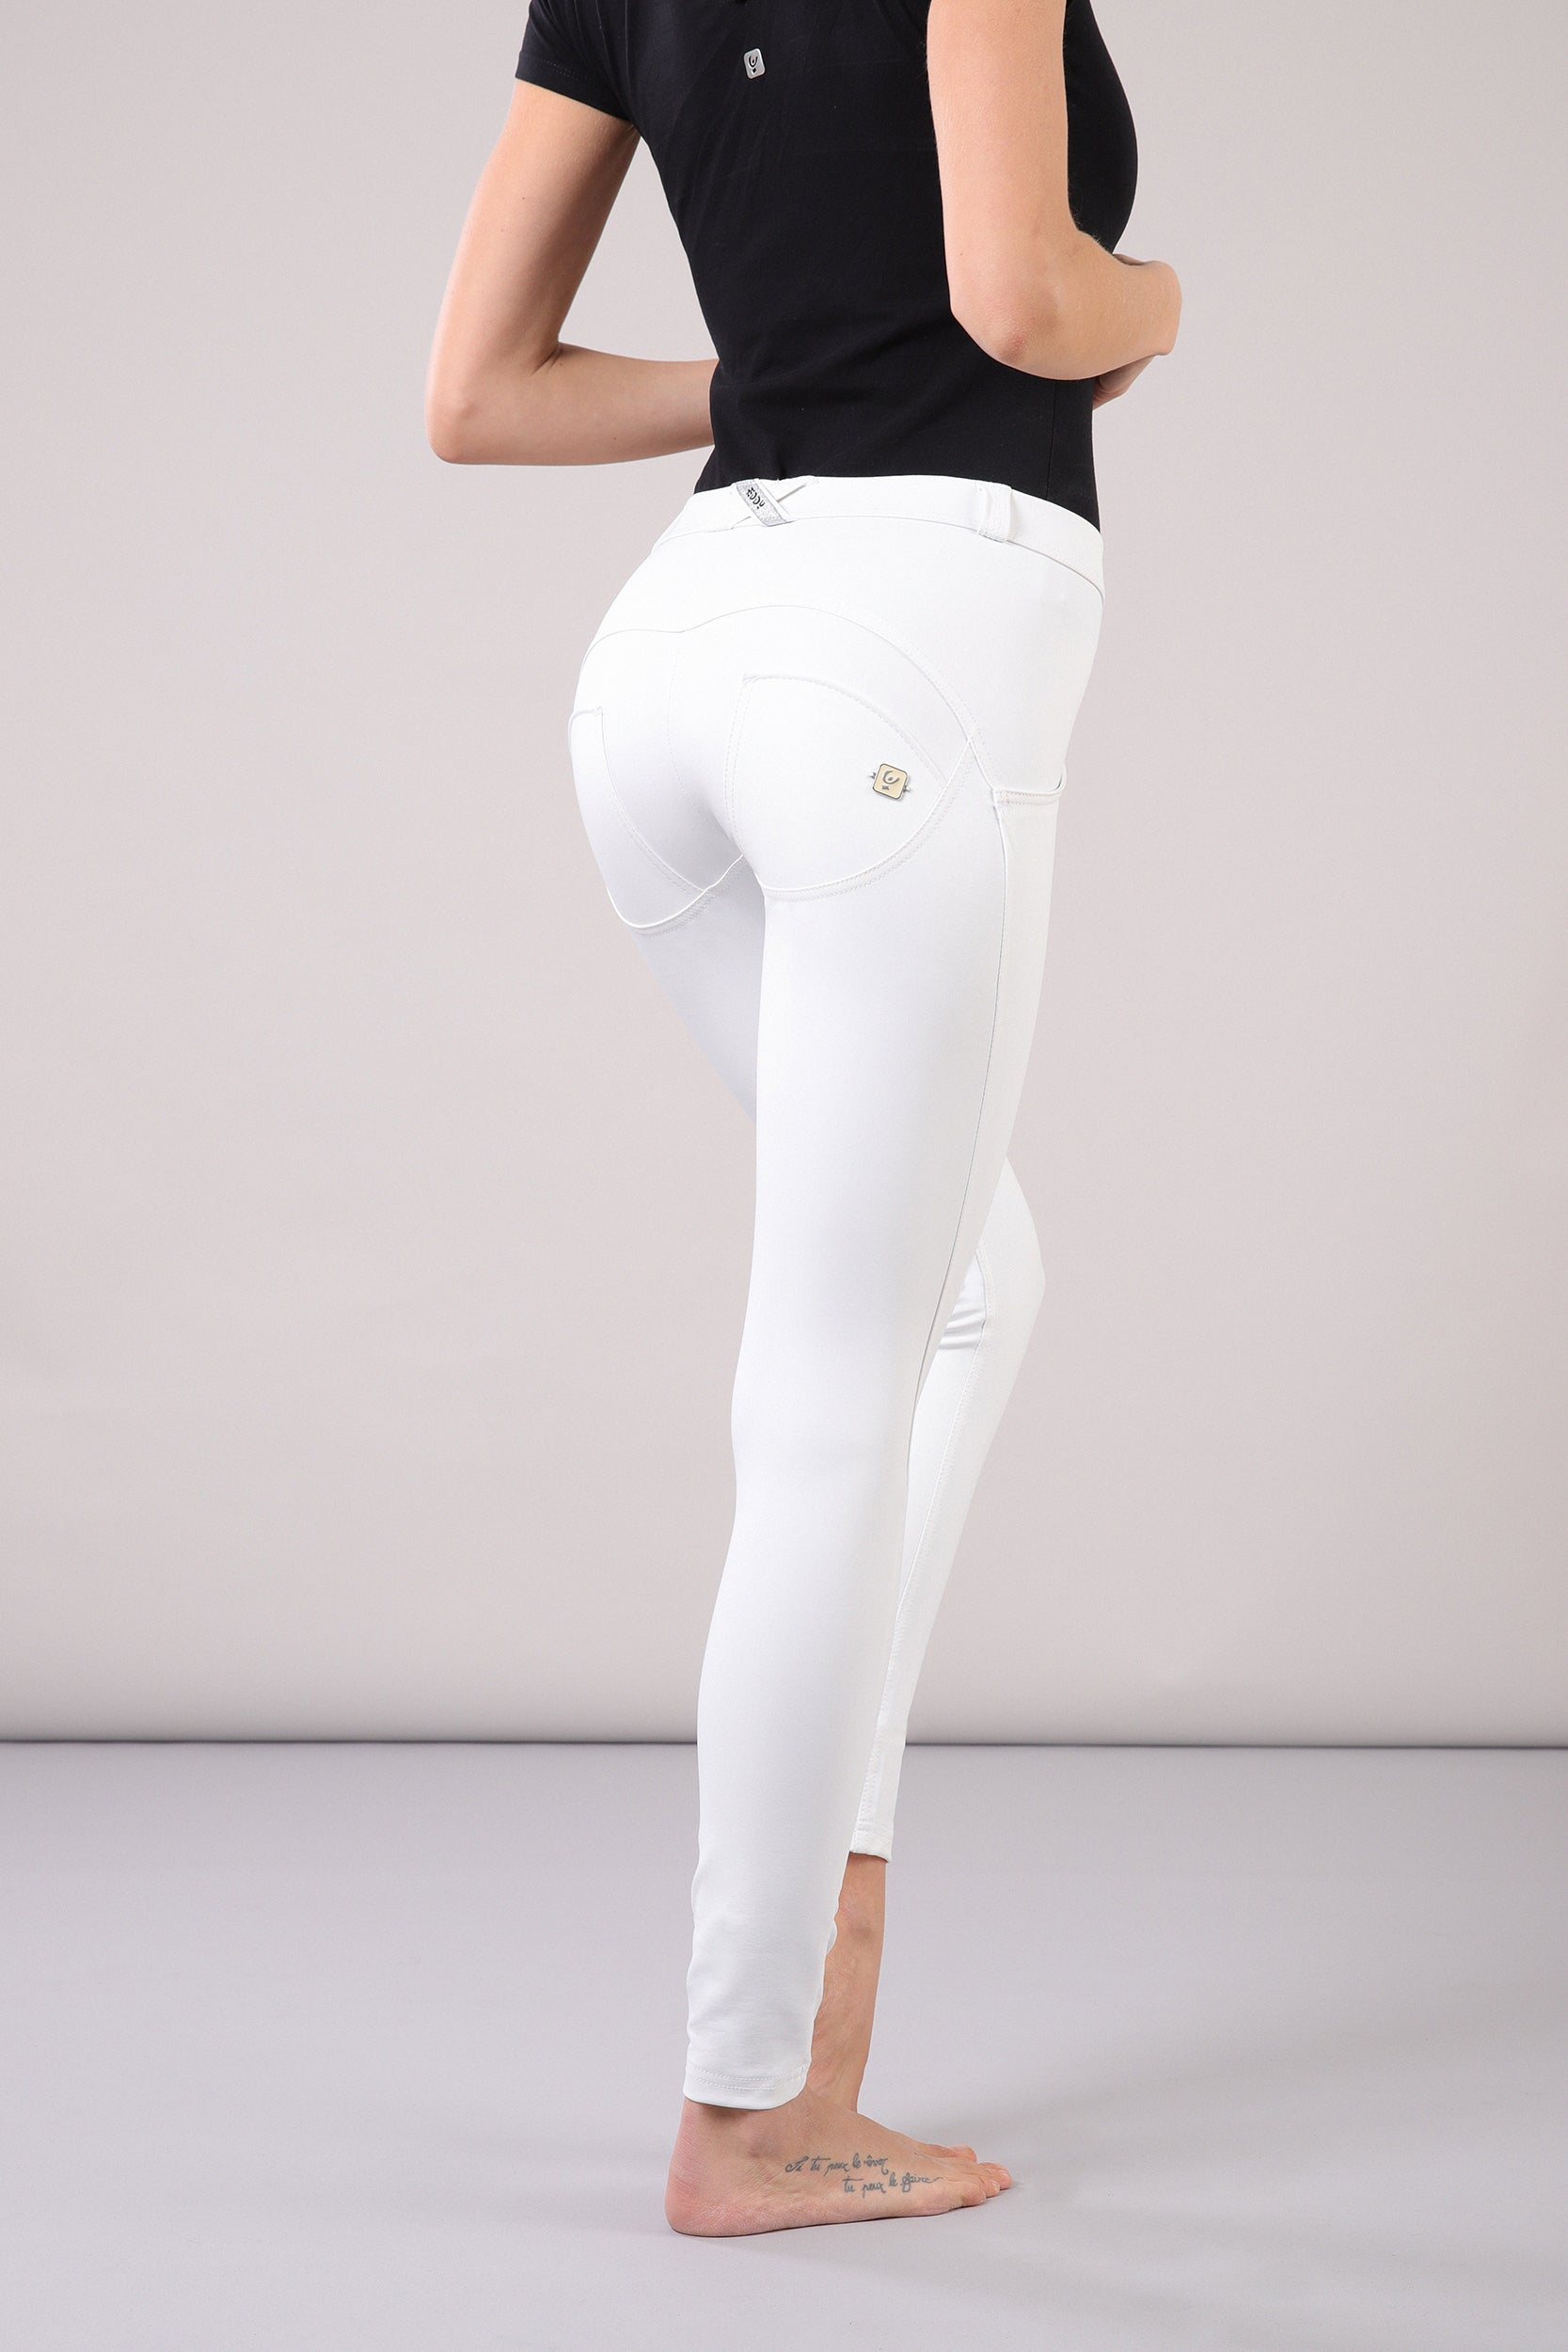 WR.UP® Eco Leather - Classic Rise Full Length - White